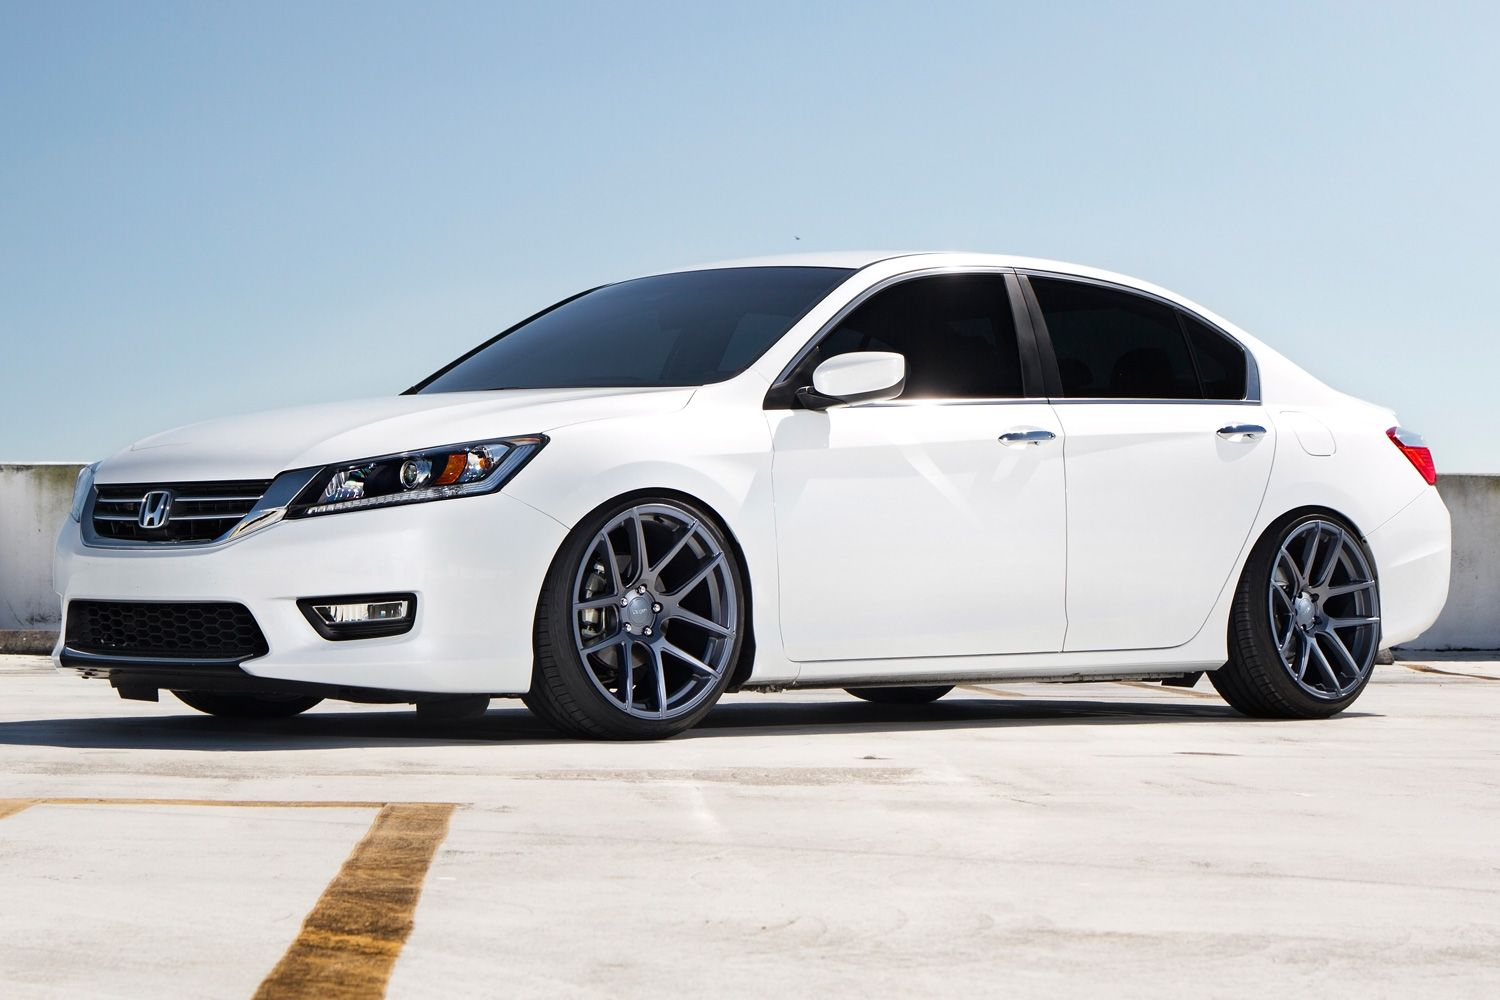 2014 honda accord custom Google Search 2014 honda